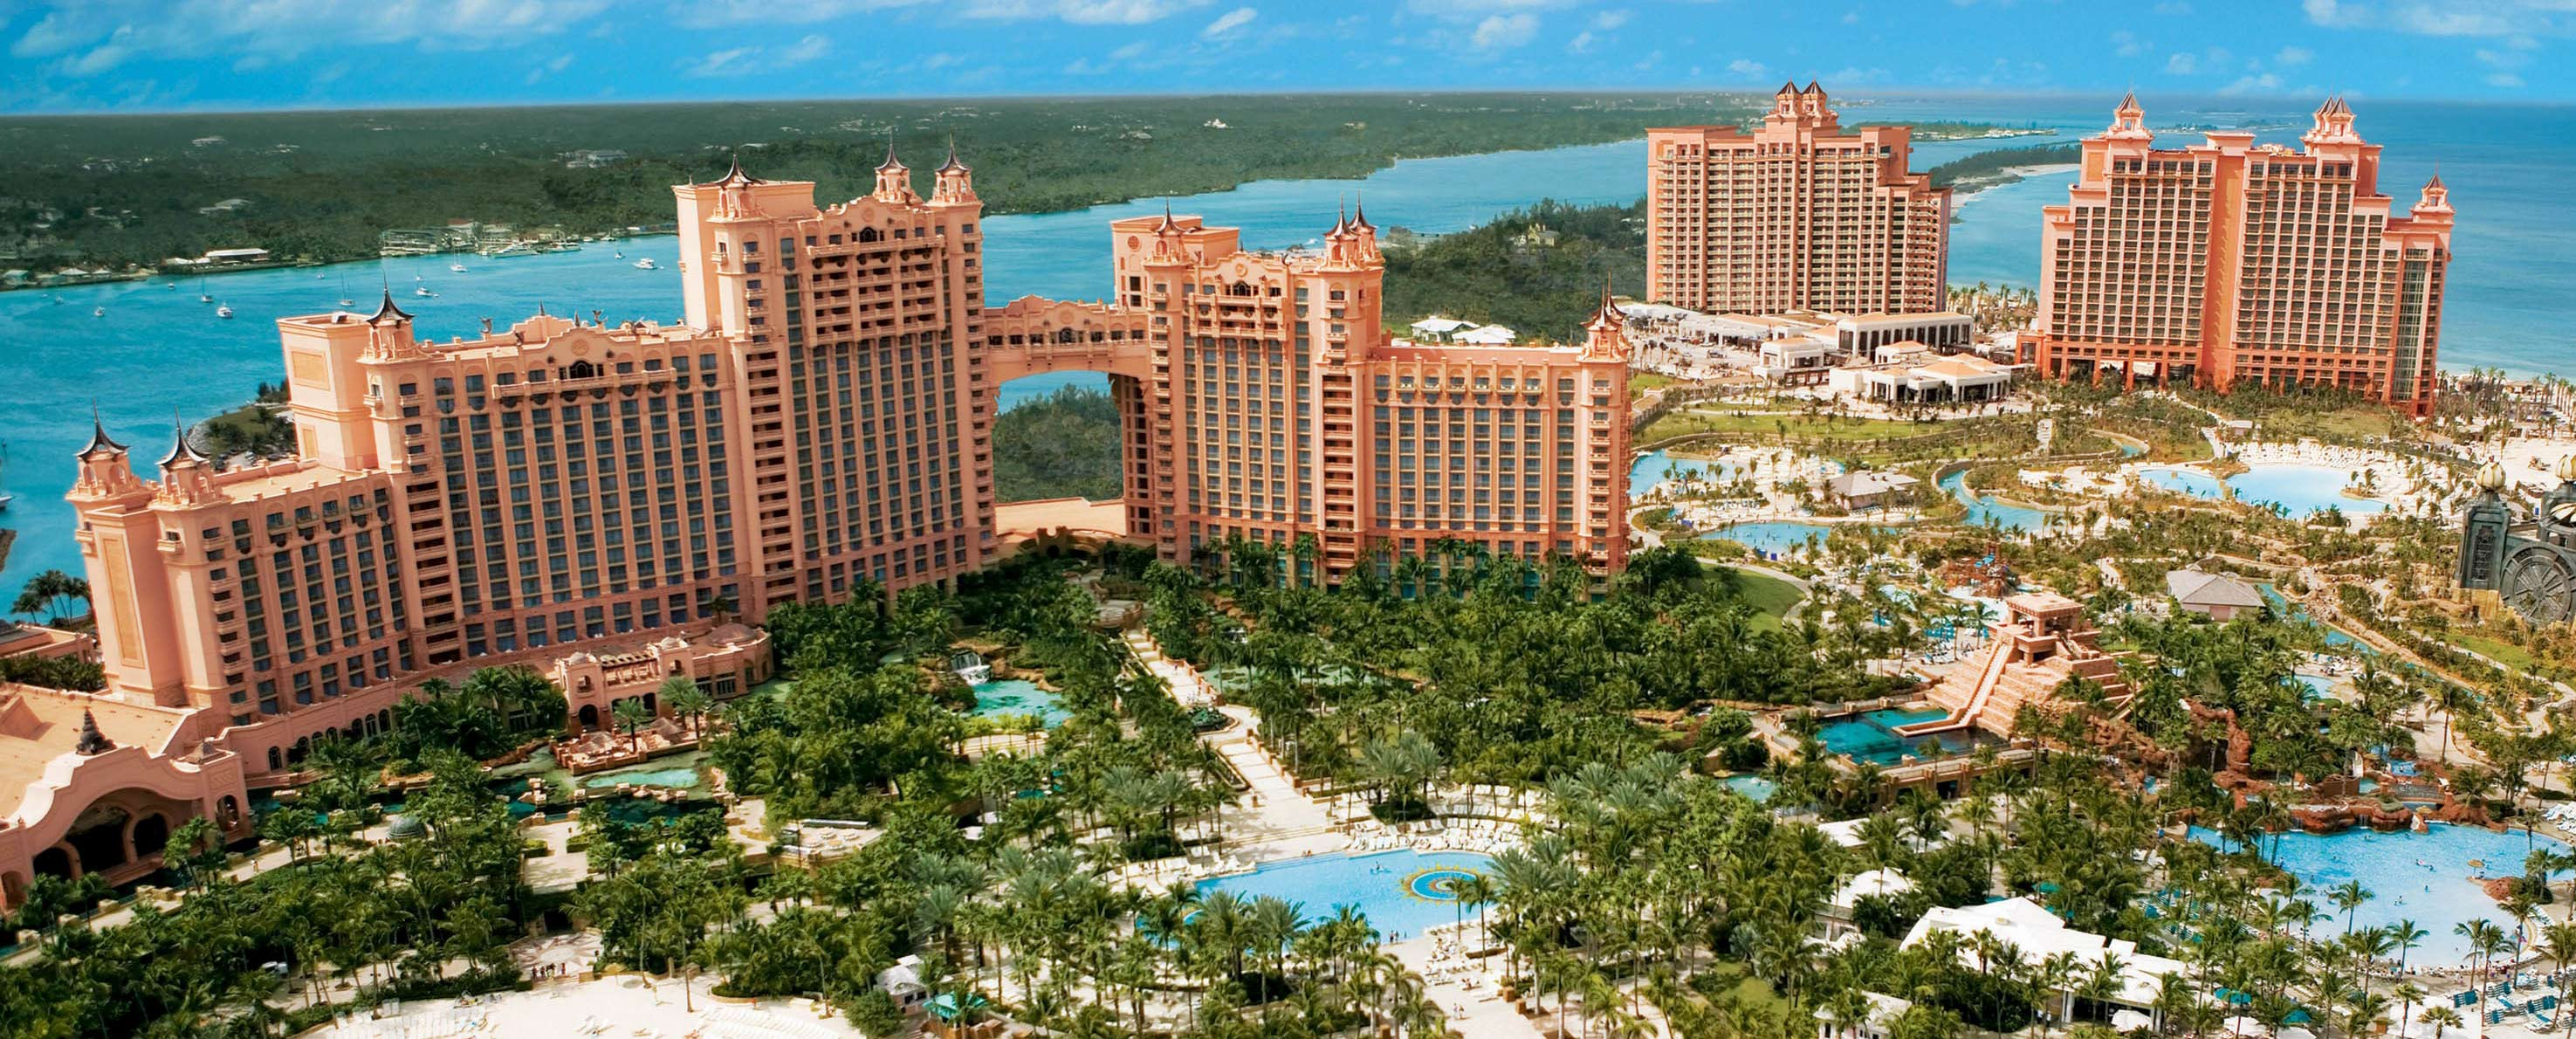 Atlantis Resort The Bahamas  Poma Architectural Metals